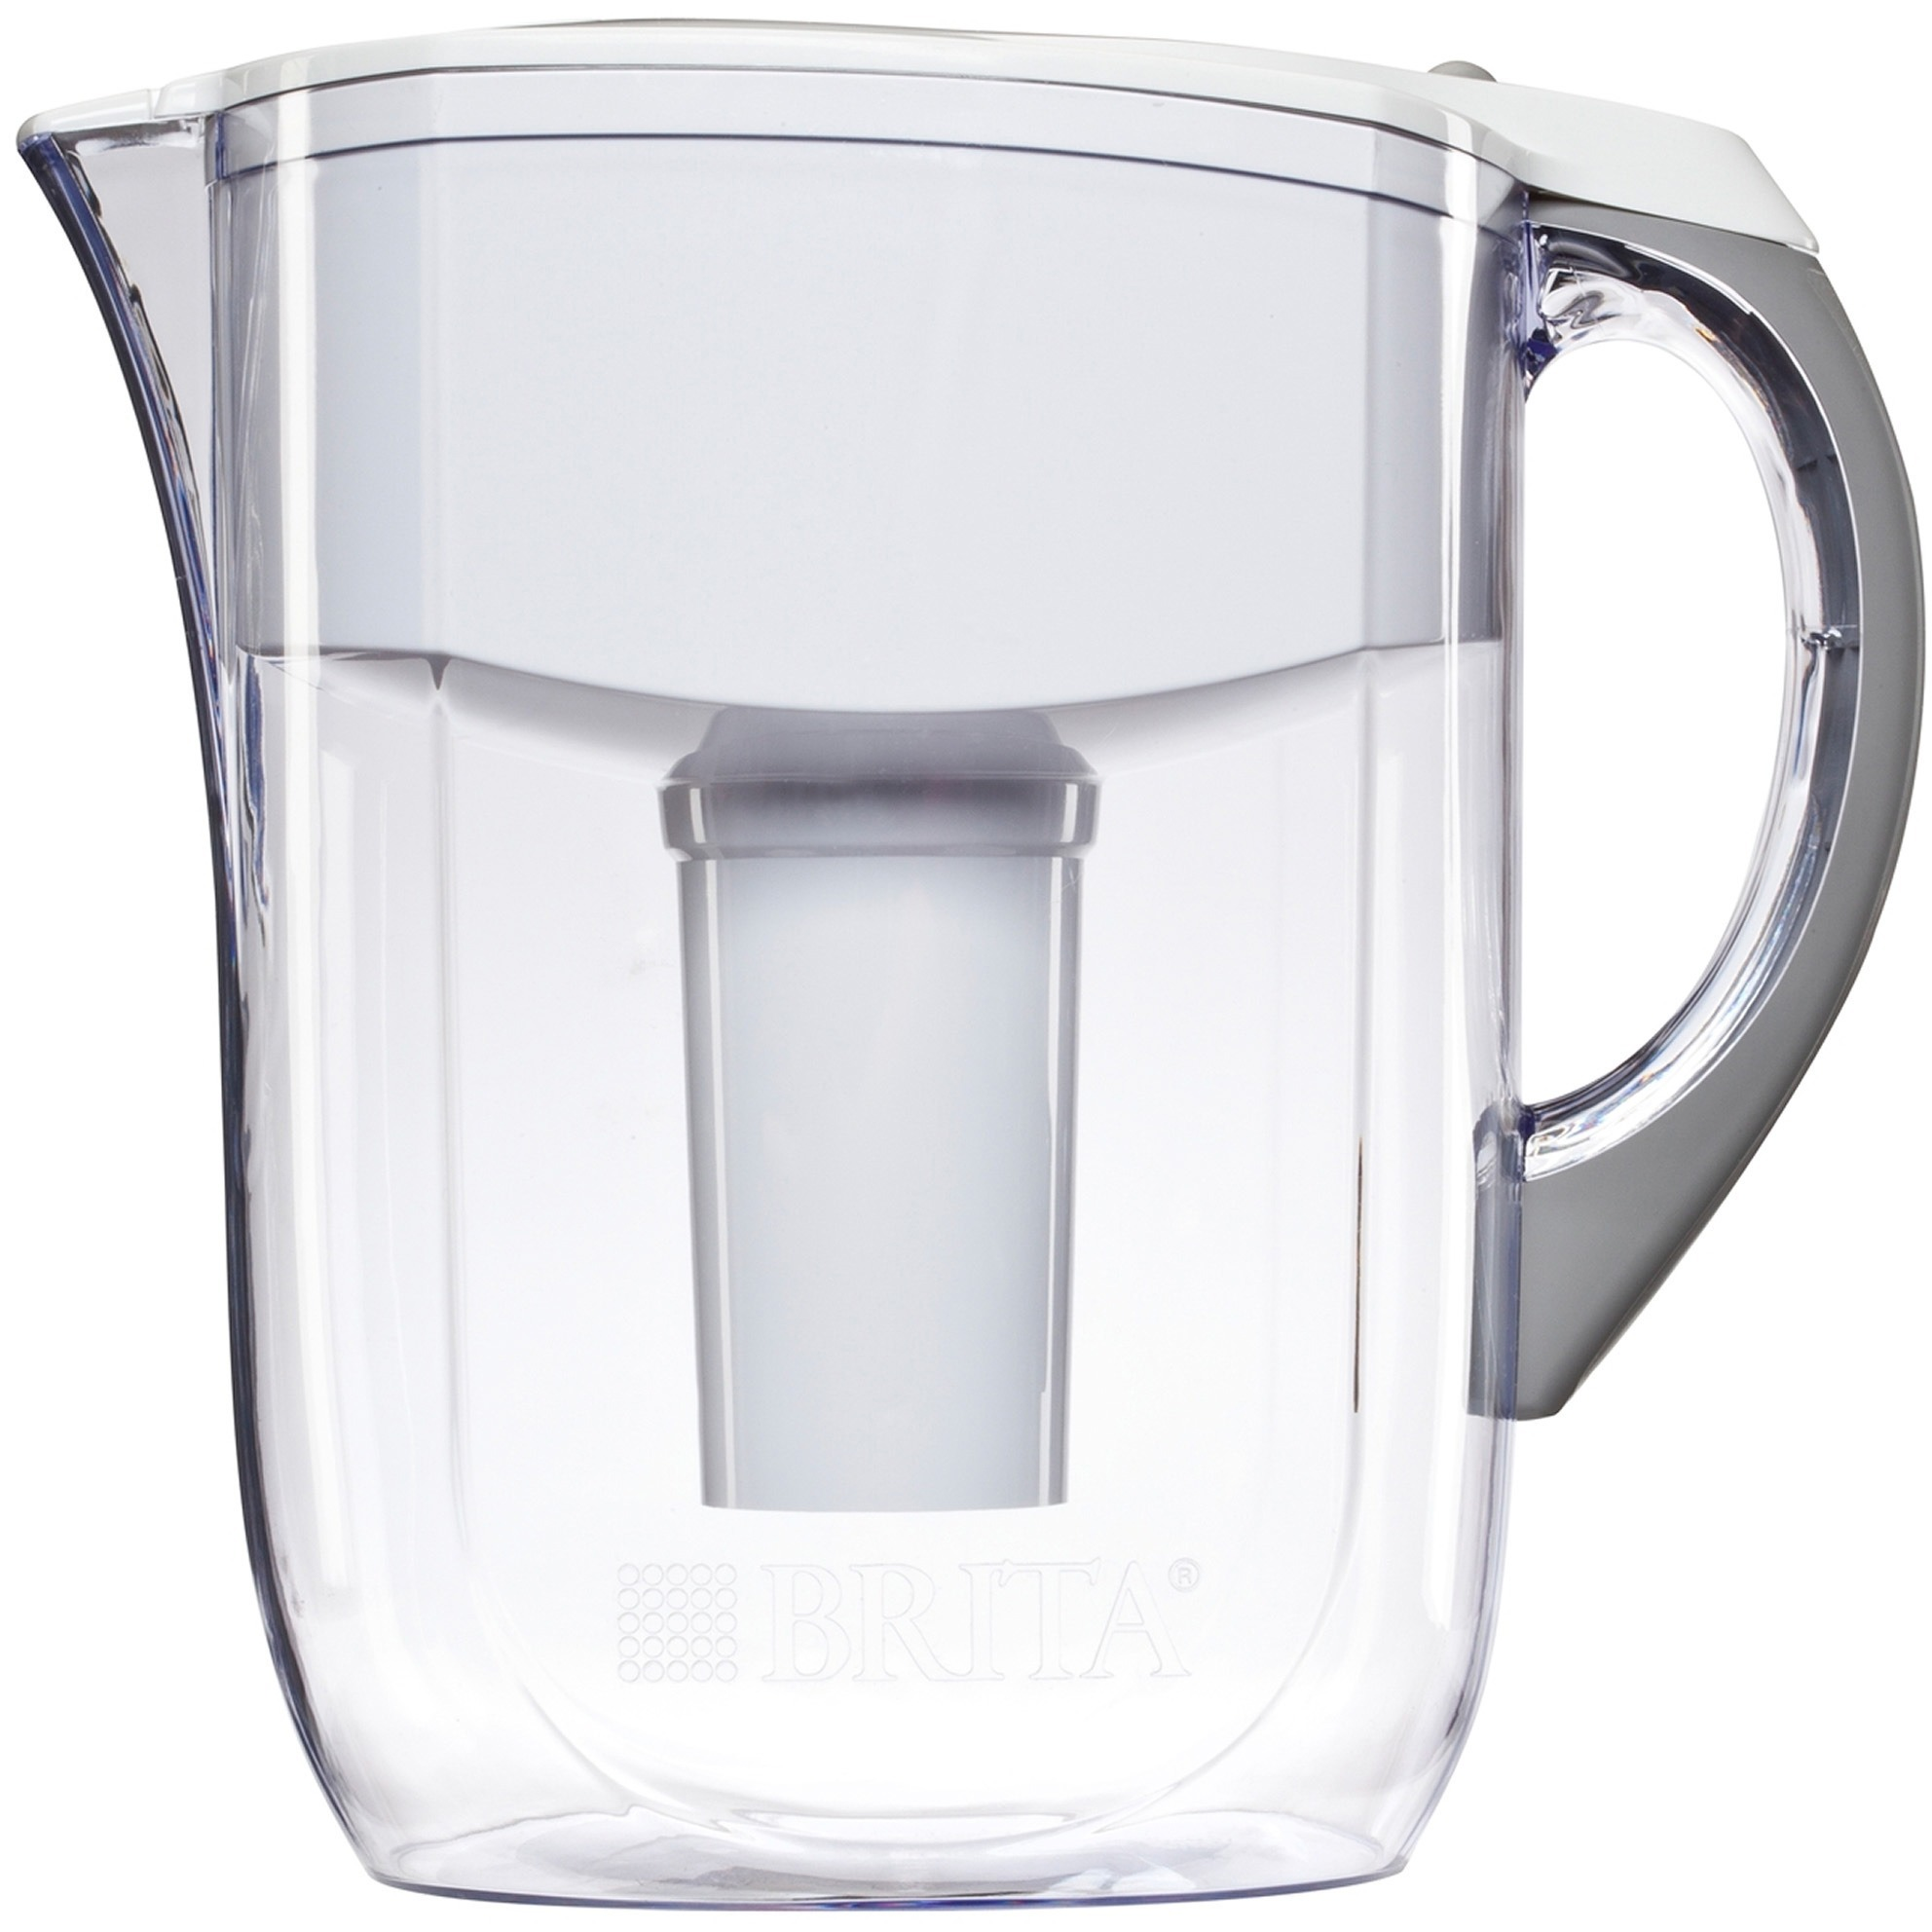 Brita, CLO35565, Large 10 Cup Grand Water Pitcher with Filter, 1 Each, White